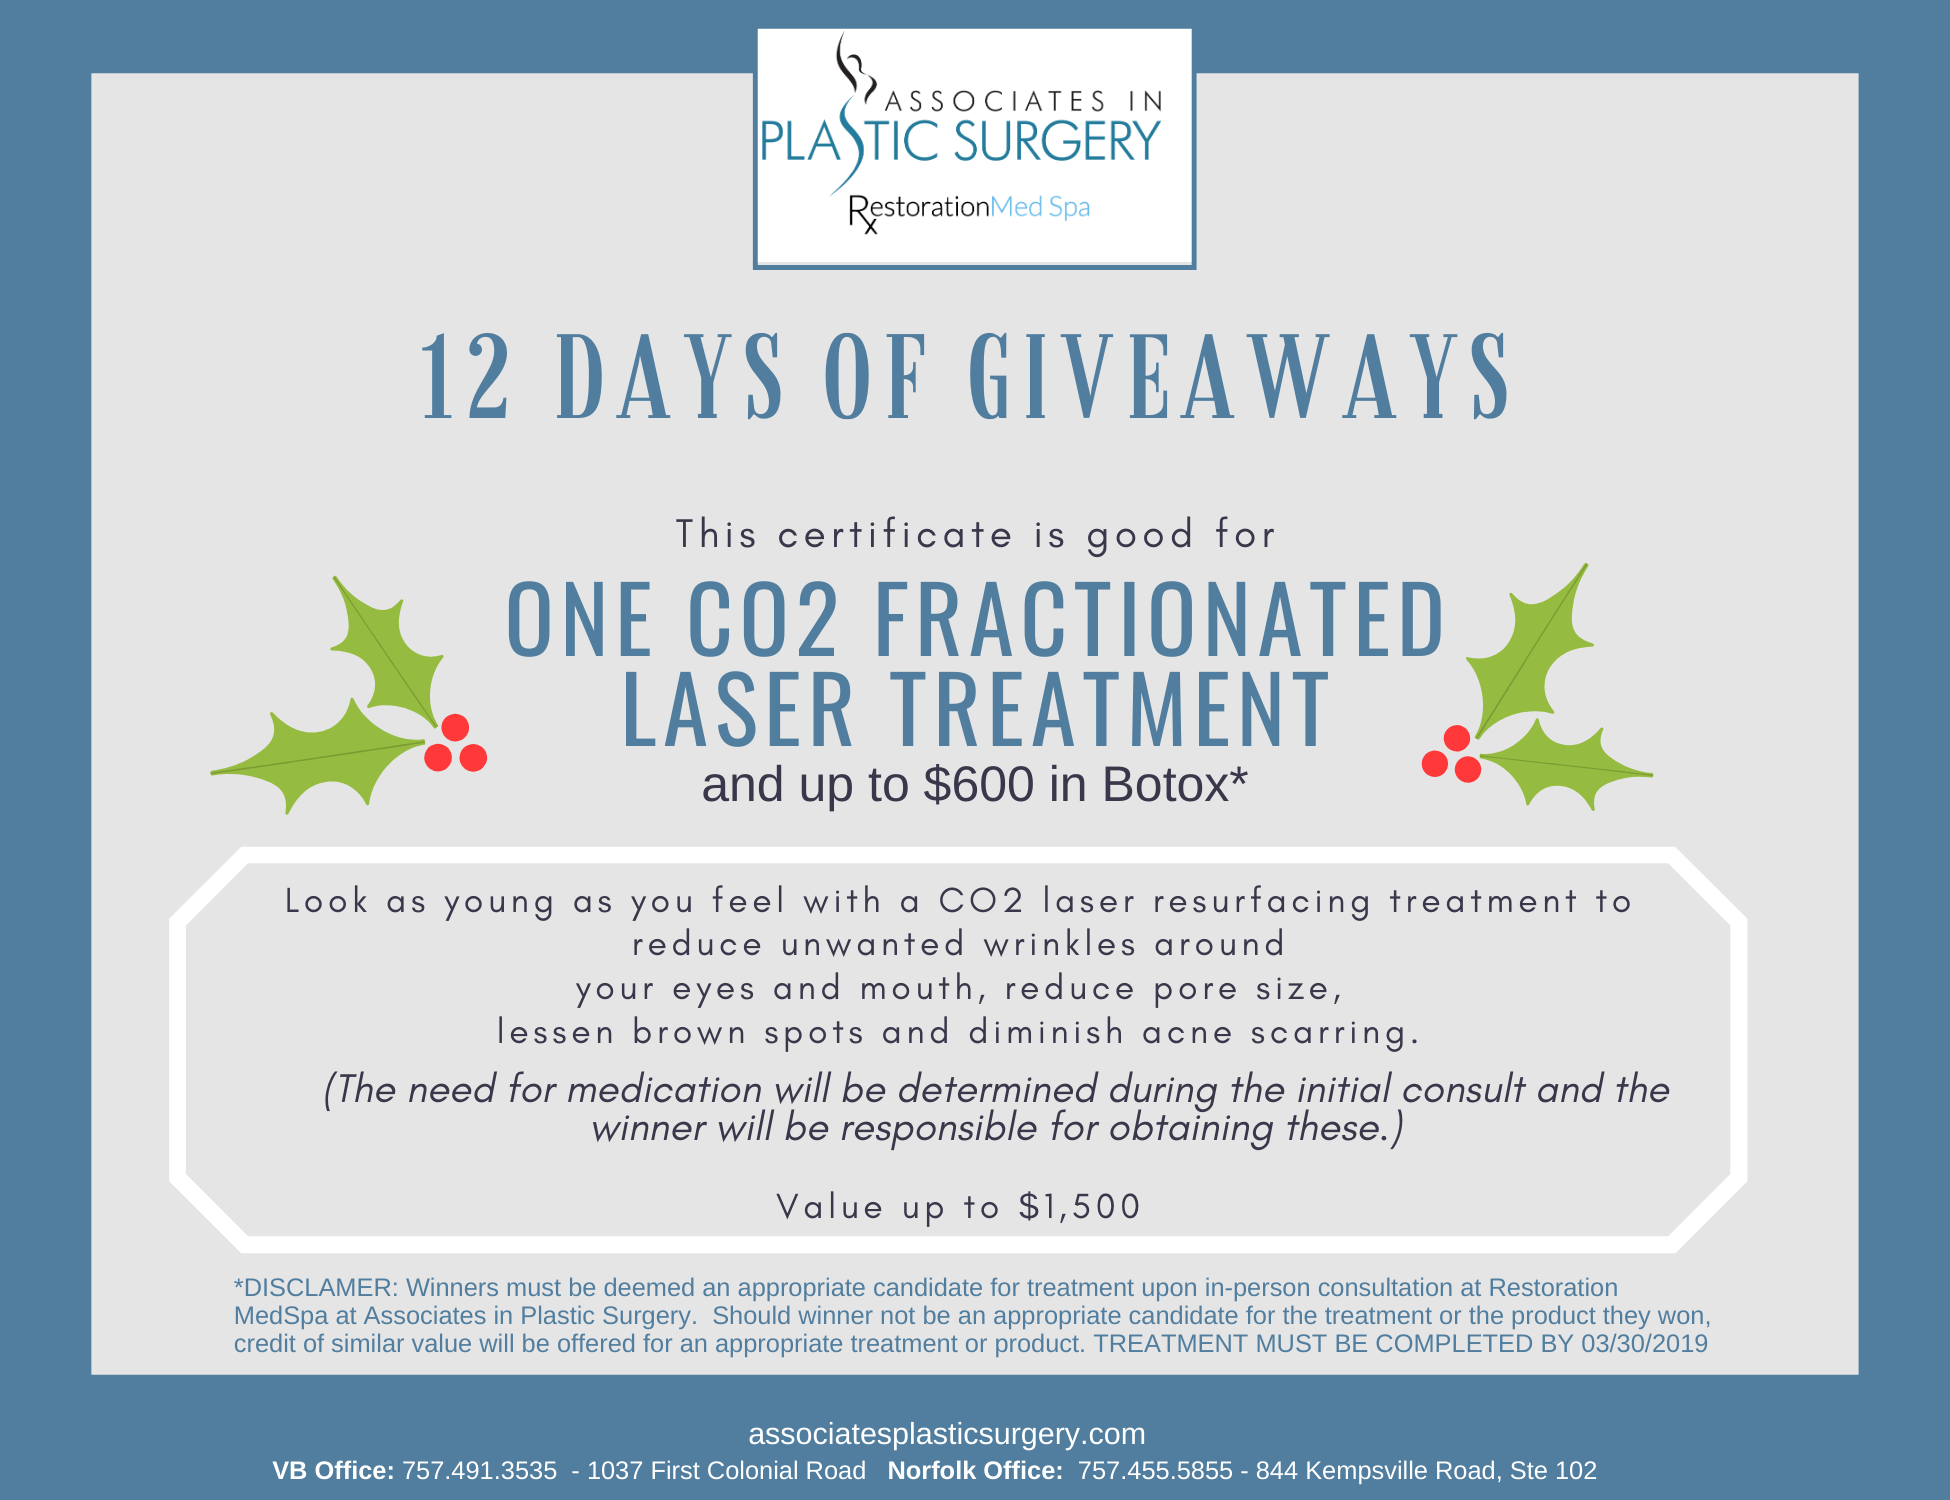 Day-11-Virginia-Beach-MedSpa-Holiday-Special-One-CO2-Fractionated-Laser-Treatment